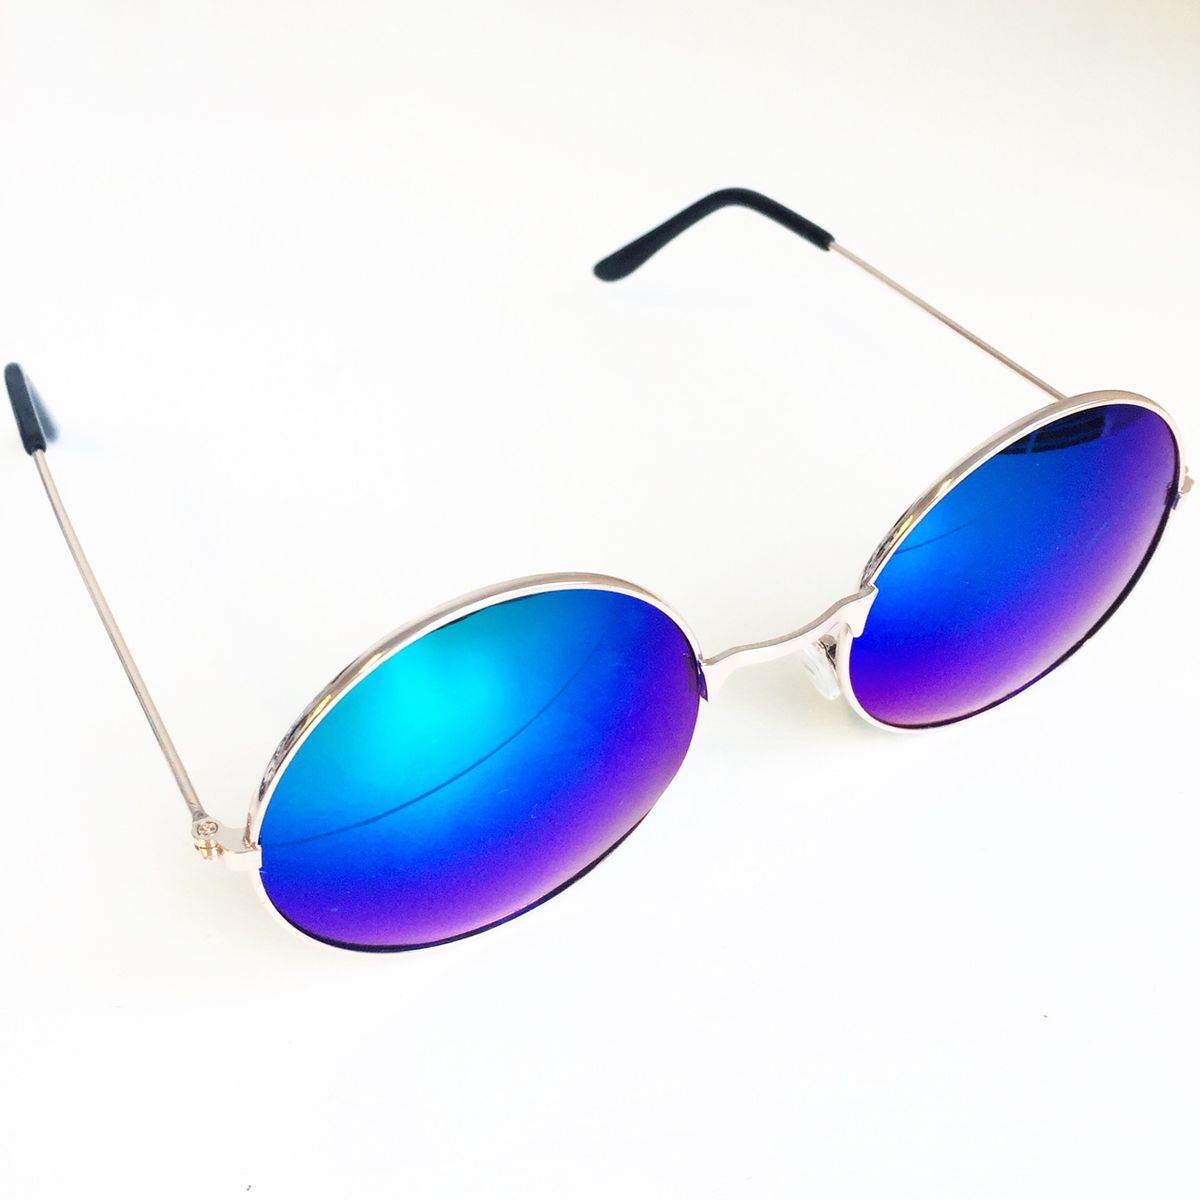 Rose Gold Frame Glasses with Blue Lens - product images  of